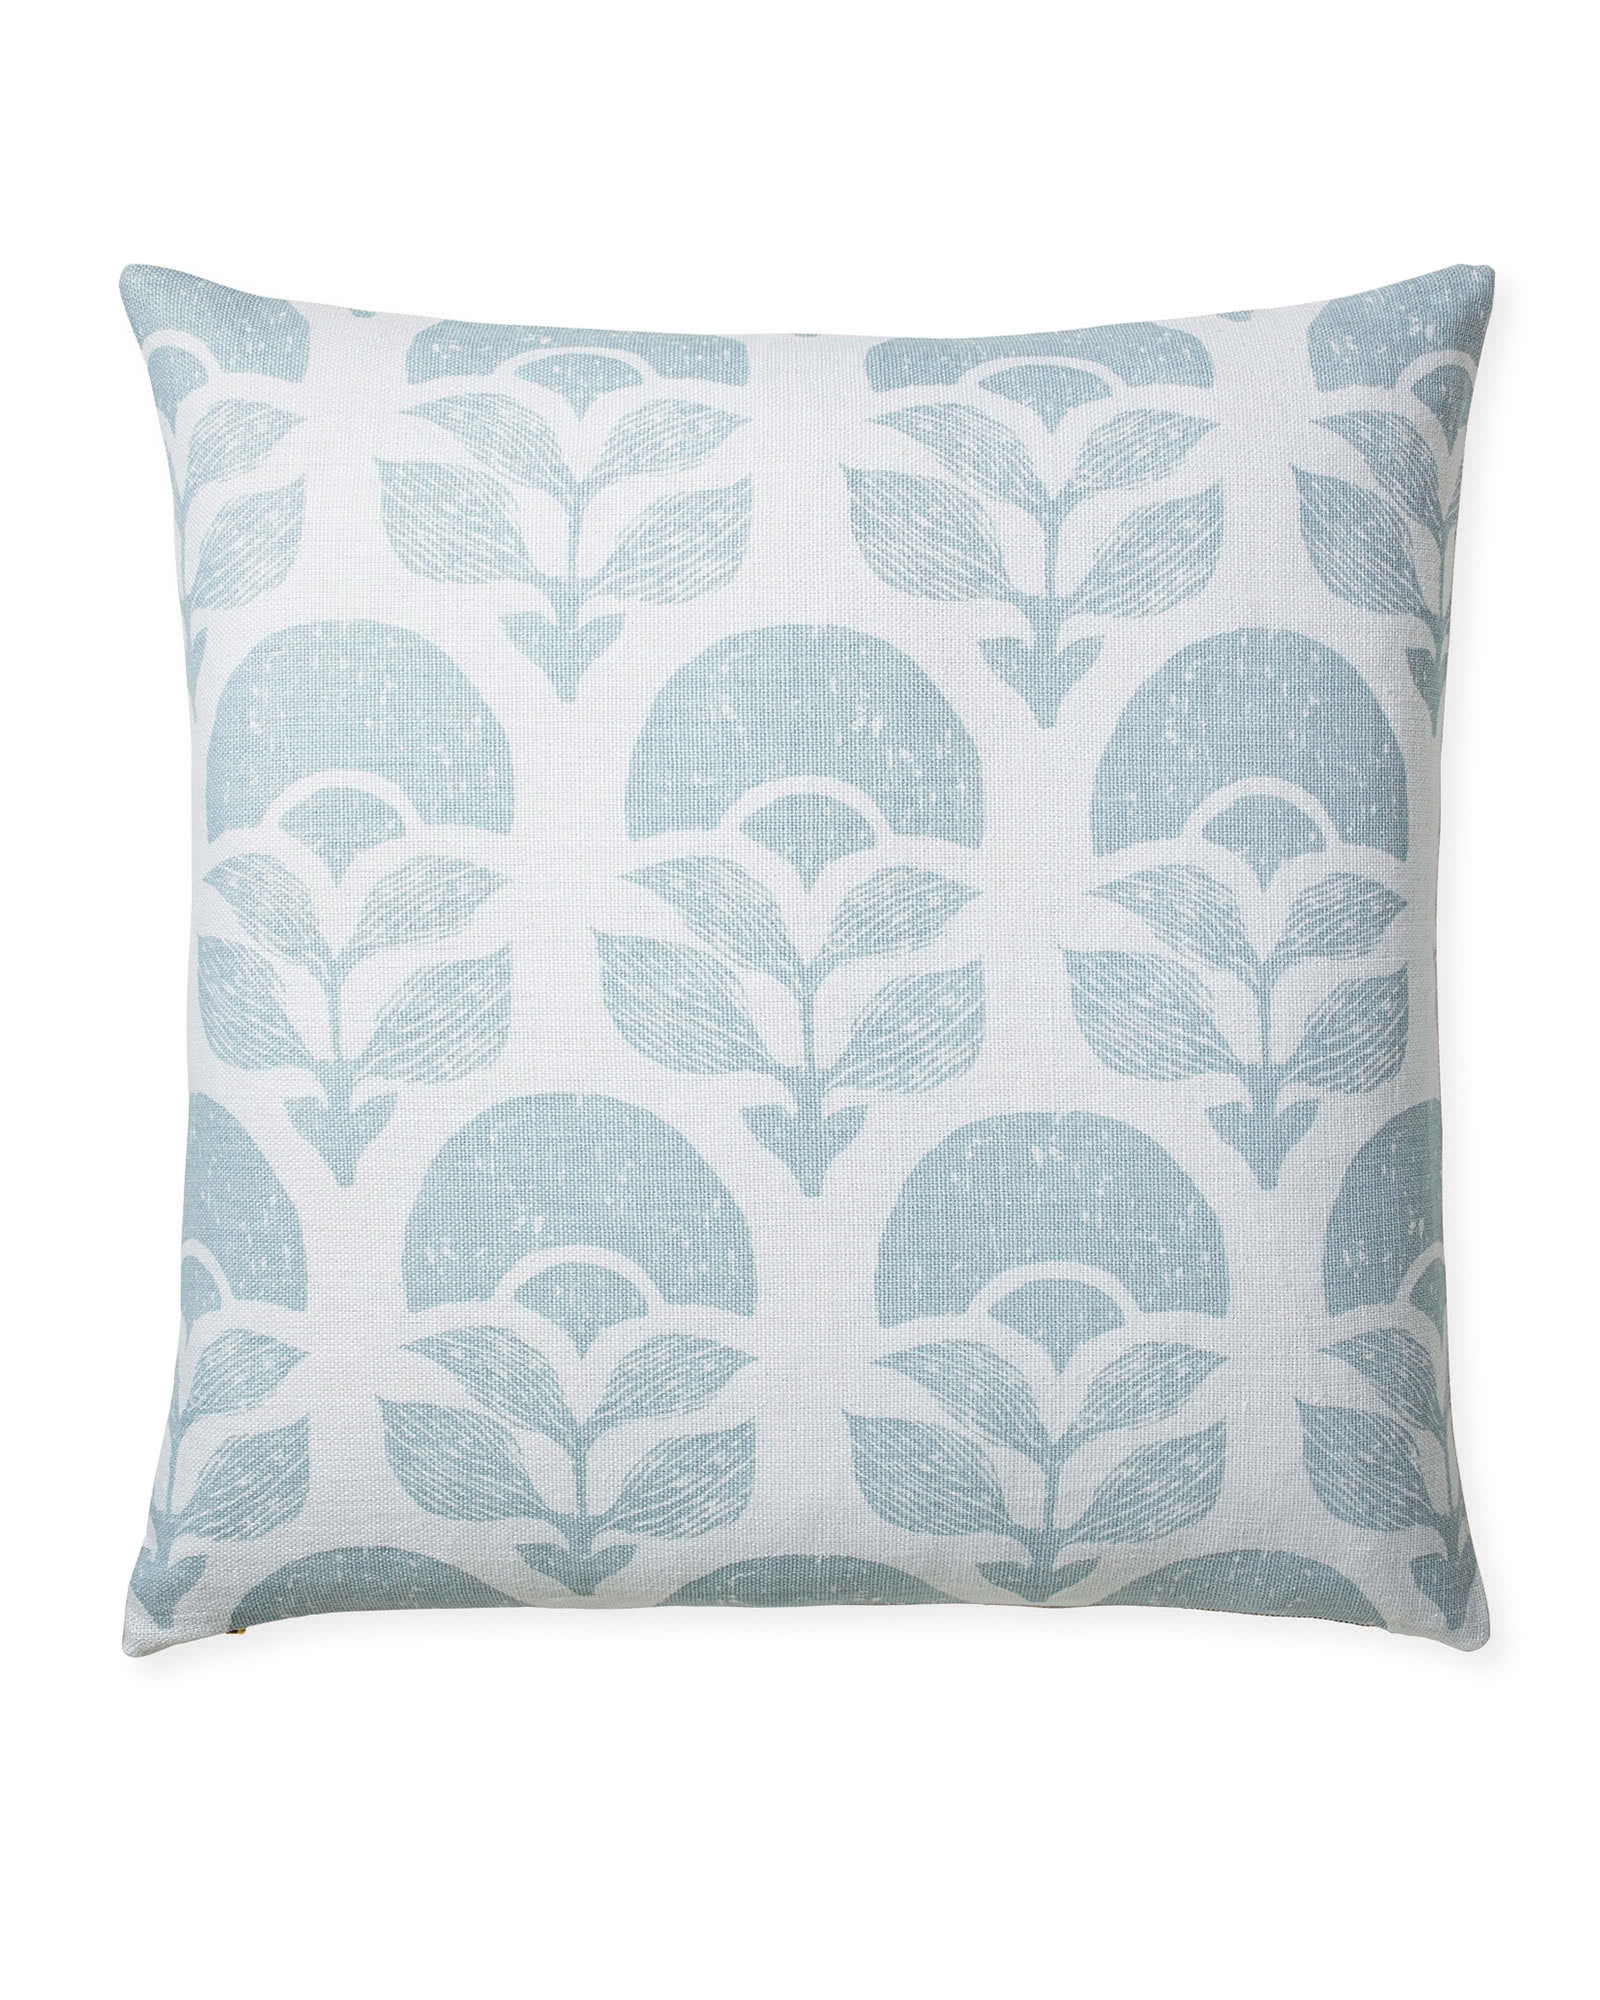 Larkspur Printed Pillow Cover, Sky